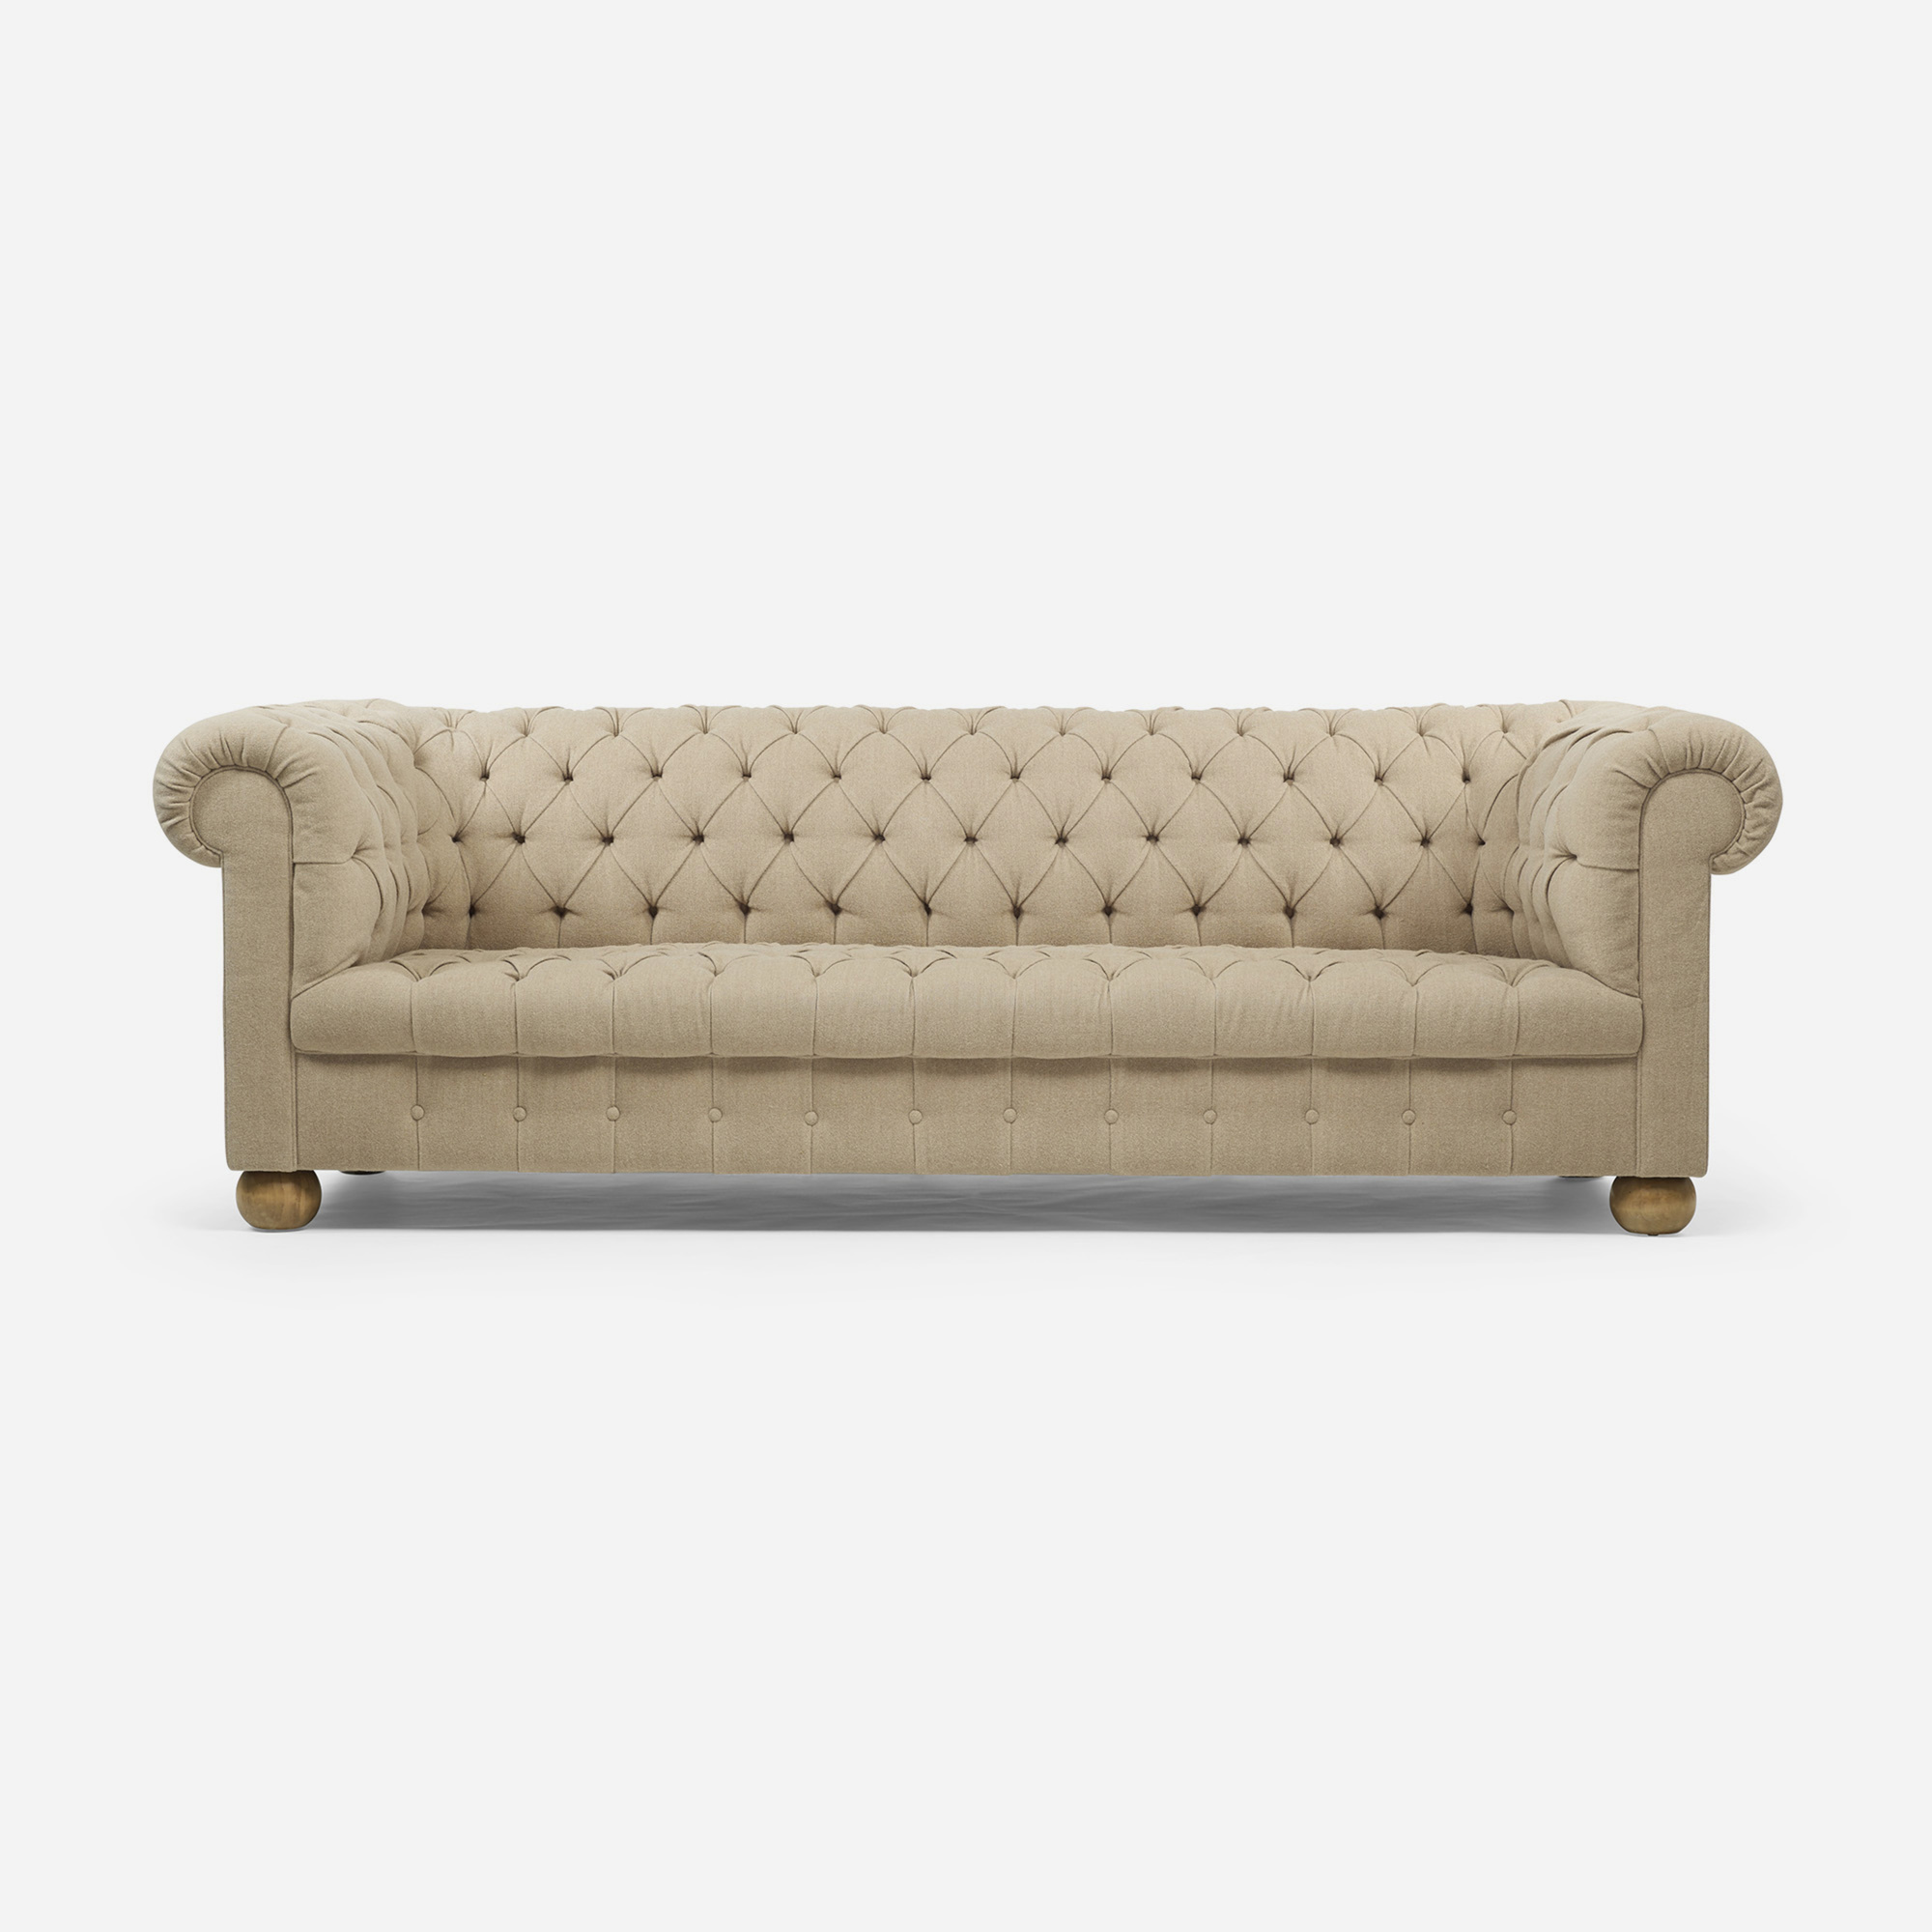 Buy A Chesterfield Sofa Chesterfield Sofa Modern 25 Best Chesterfield Sofas To